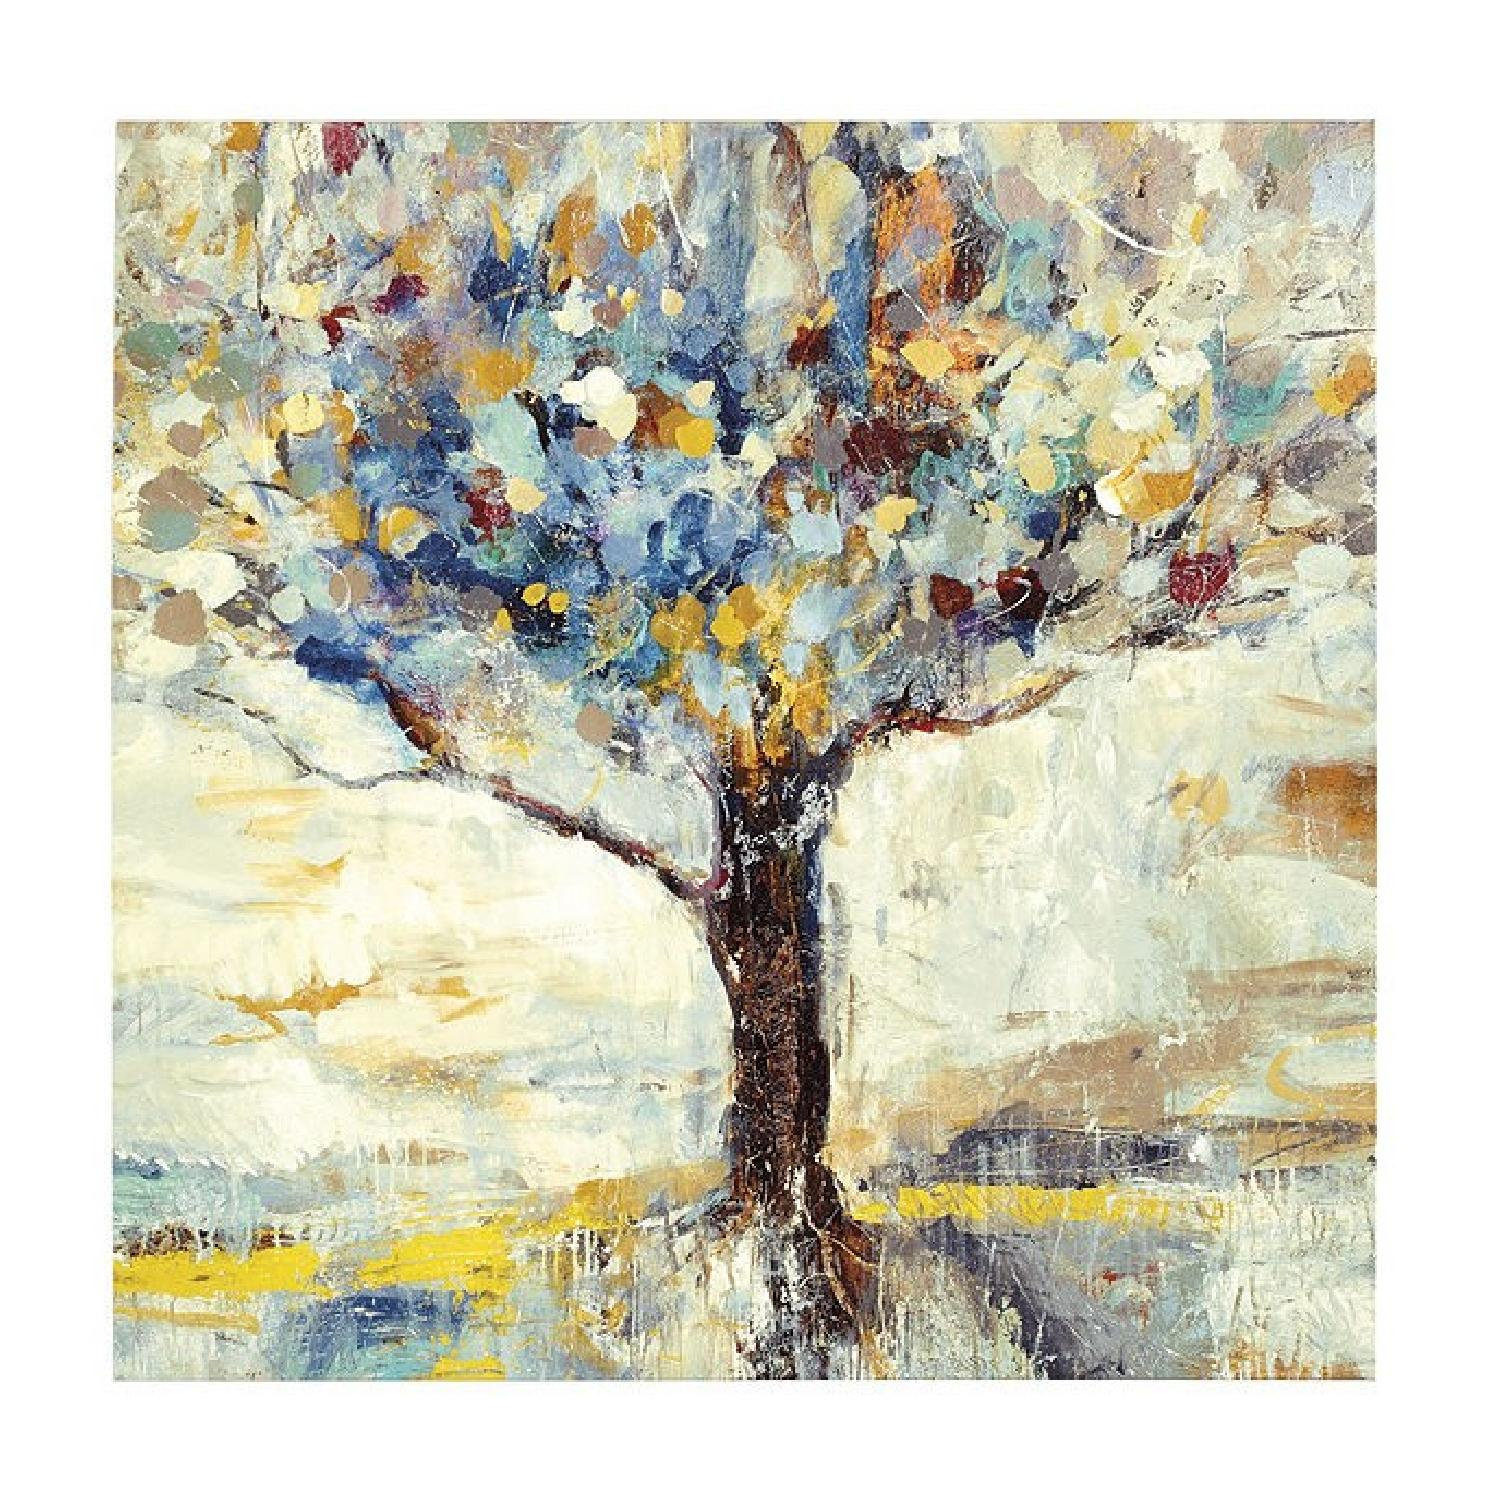 Ballard Designs Tree Giclee Cotton Canvas on Wood Frame - image-0